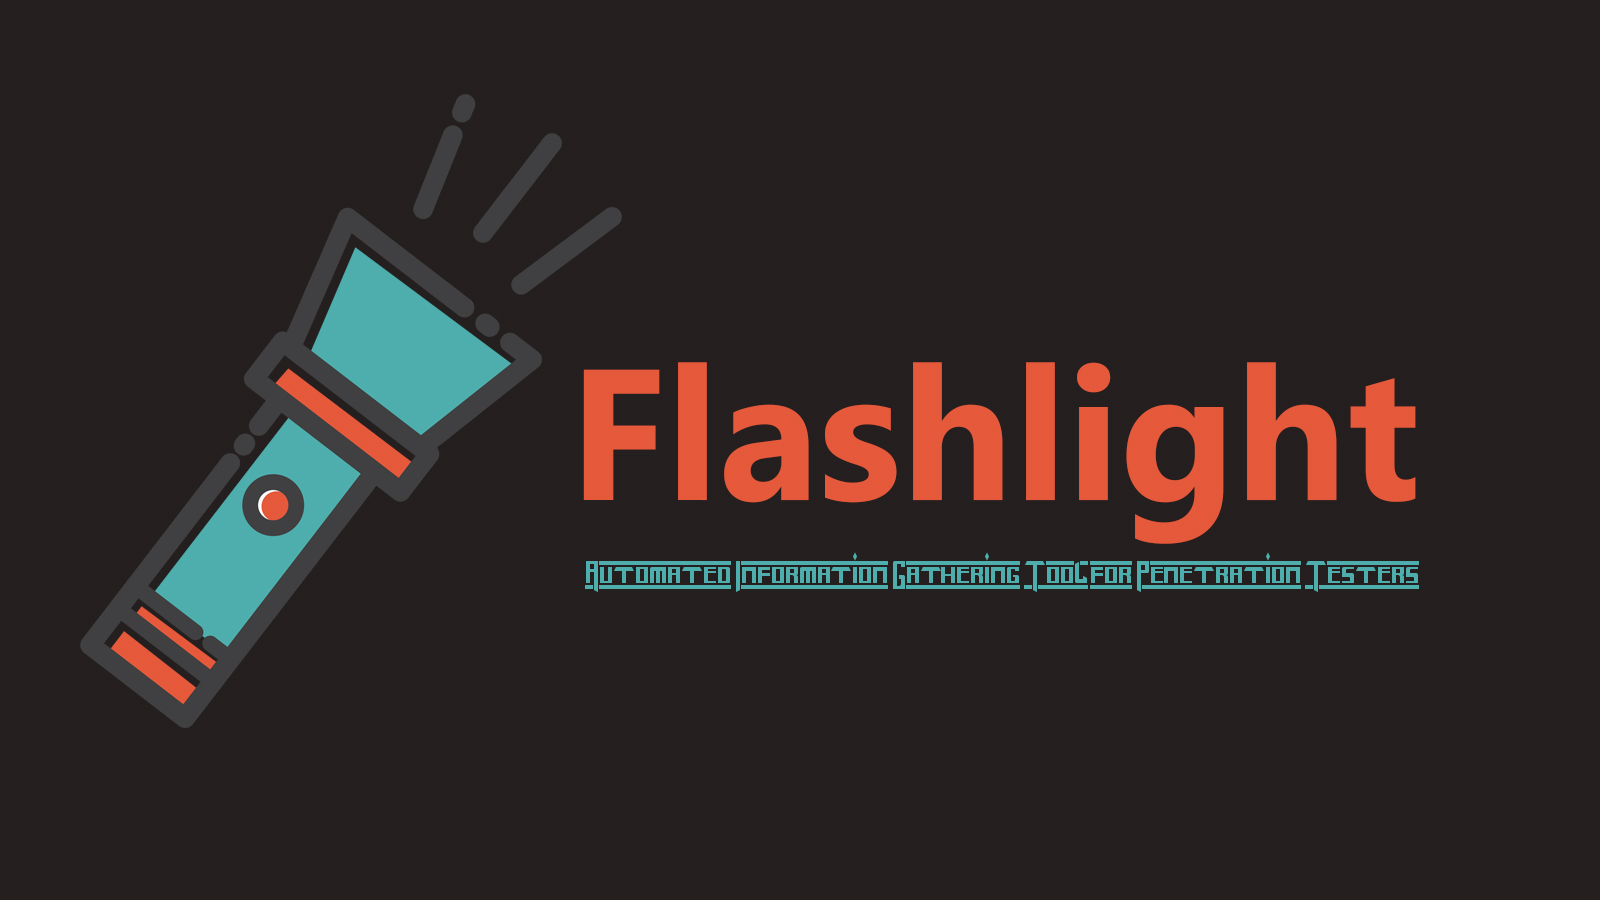 Flashlight - Automated Information Gathering Tool for Penetration Testers